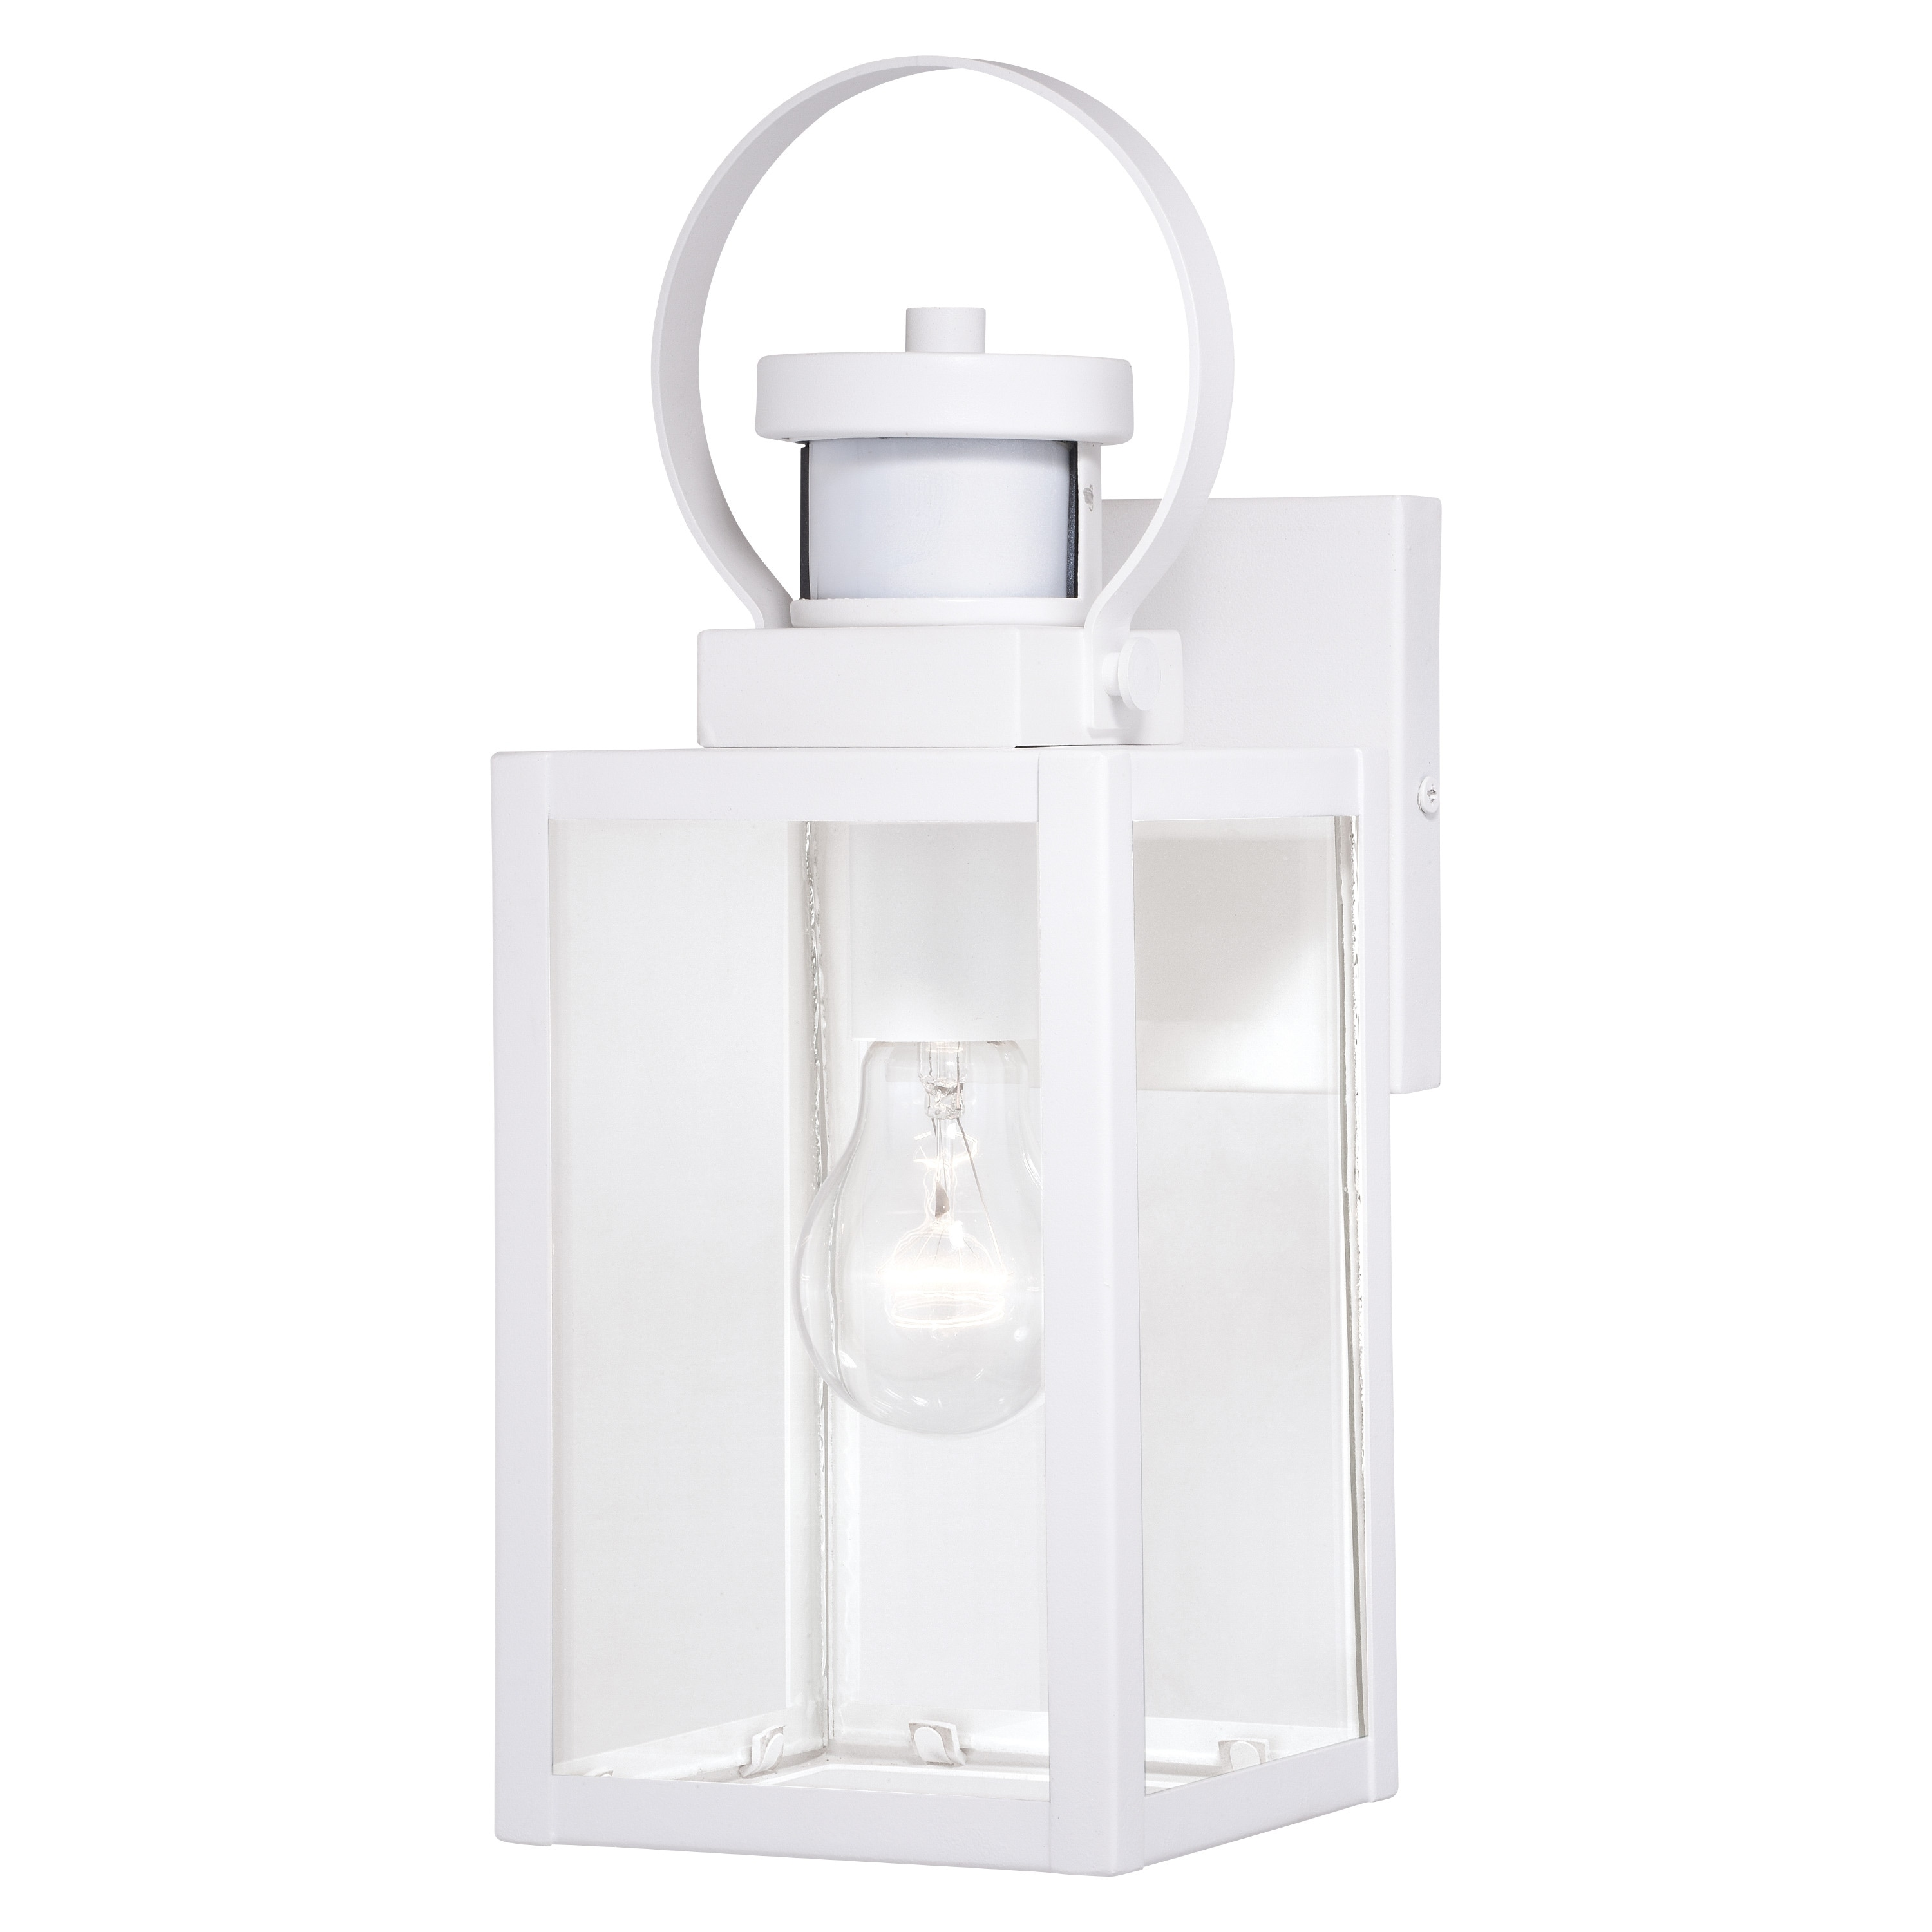 Medinah White Motion Sensor Dusk To Dawn Outdoor Wall Light Clear Glass 5 In W X 13 25 In H X 6 5 In D Overstock 31059857